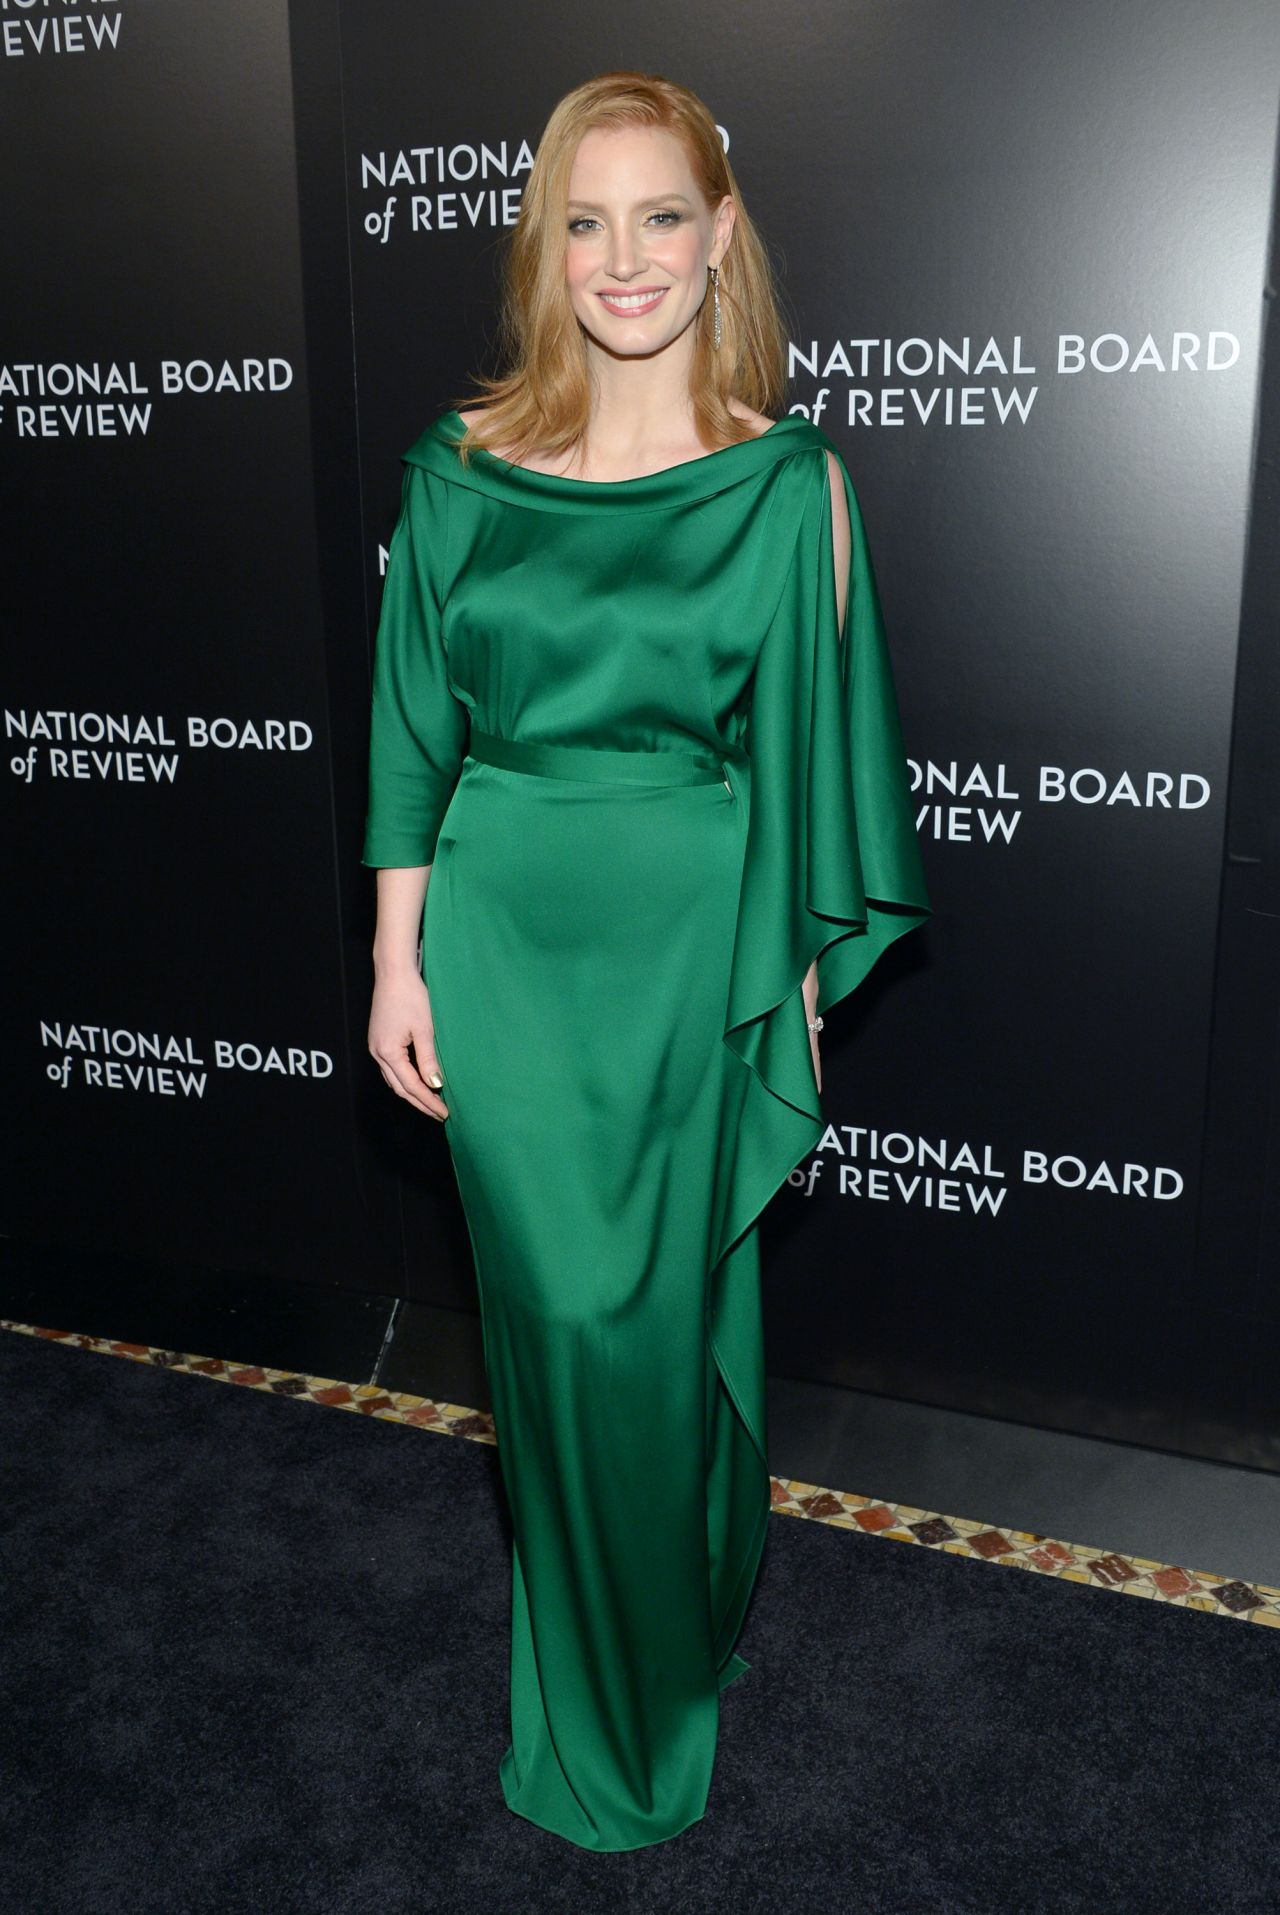 jessica-chastain-2015-national-board-of-review-gala-in-new-york-city-18